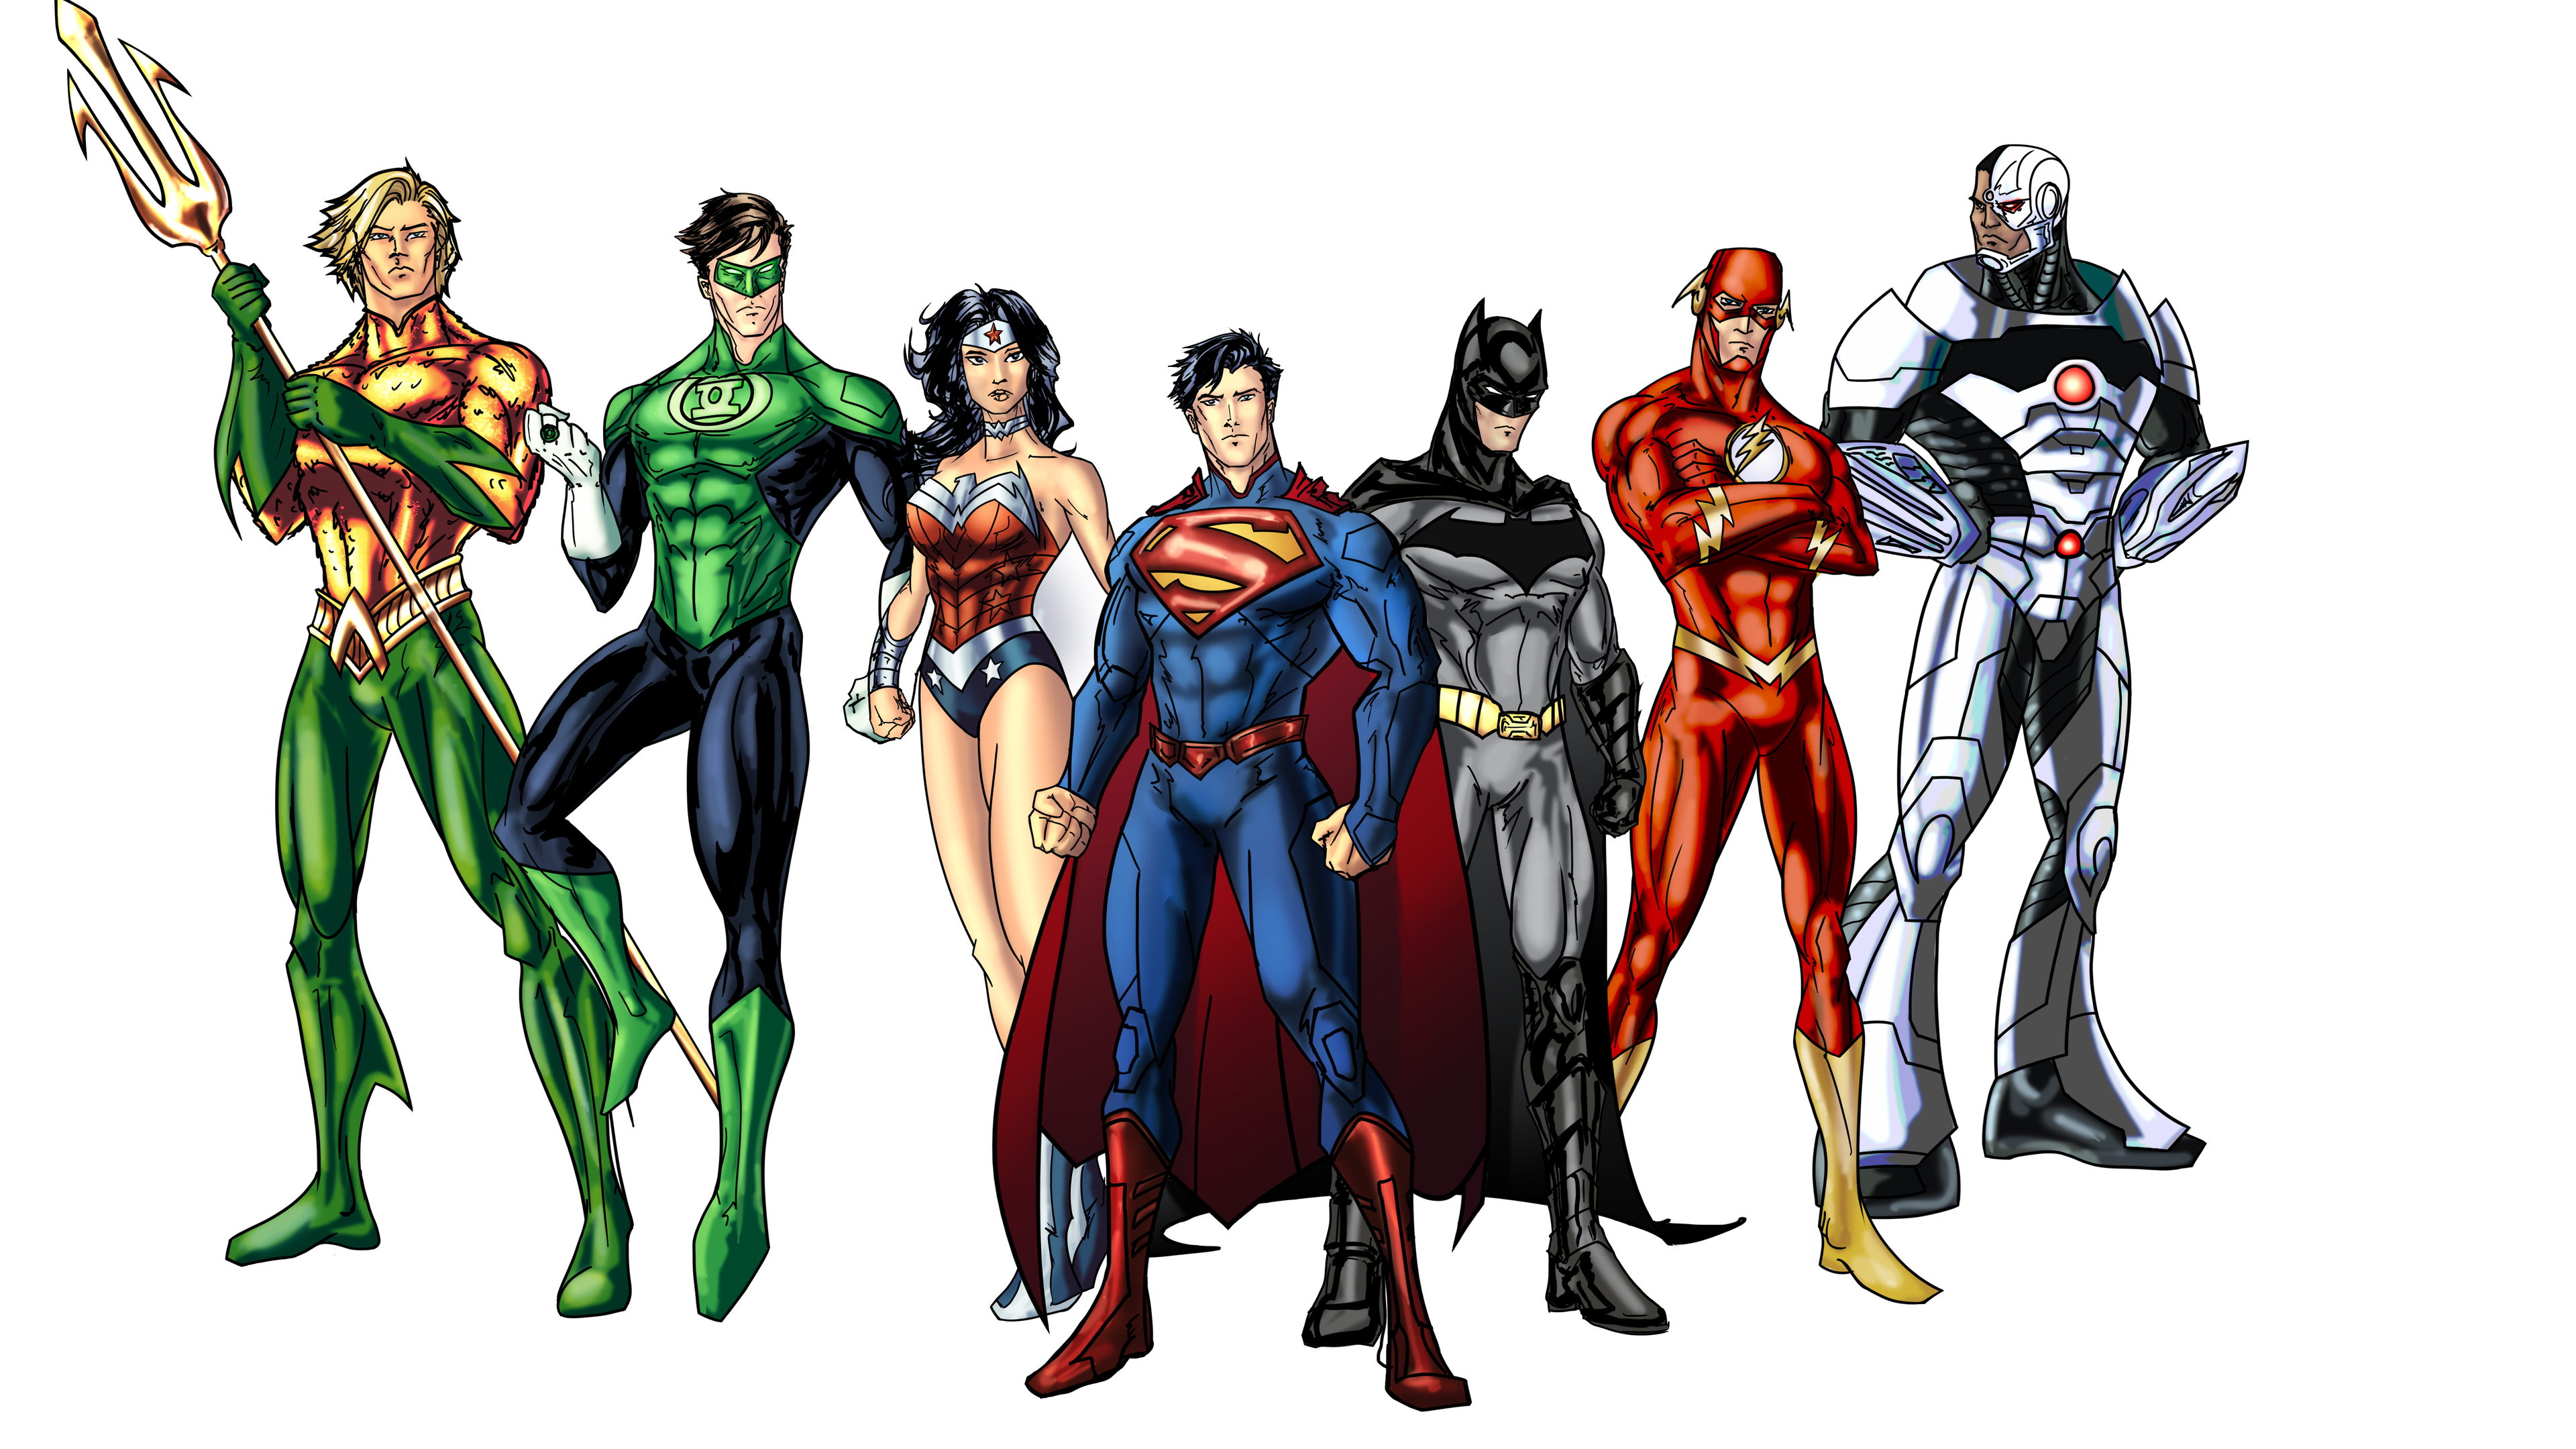 justice league art 8k 1536520250 - Justice League Art 8k - wonder woman wallpapers, superman wallpapers, superheroes wallpapers, justice league wallpapers, hd-wallpapers, green lantern wallpapers, flash wallpapers, digital art wallpapers, cyborg wallpapers, comics wallpapers, batman wallpapers, artist wallpapers, art wallpapers, aquaman wallpapers, 8k wallpapers, 5k wallpapers, 4k-wallpapers